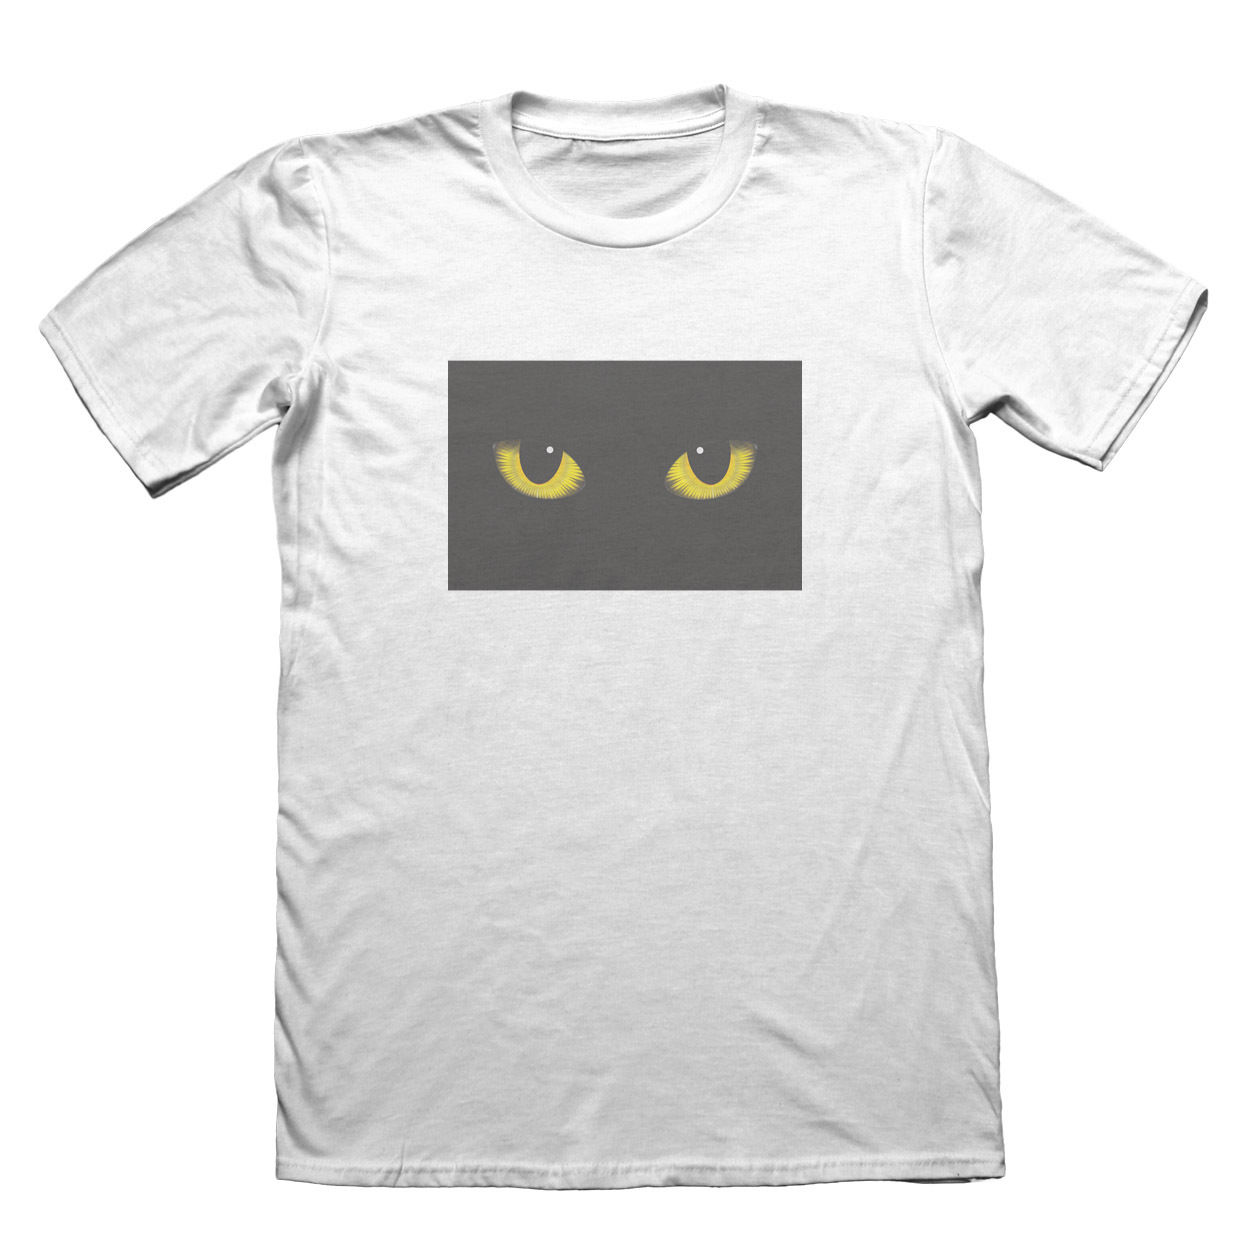 Cats Eyes T-Shirt - Mens Fathers Day Christmas Gift #7408